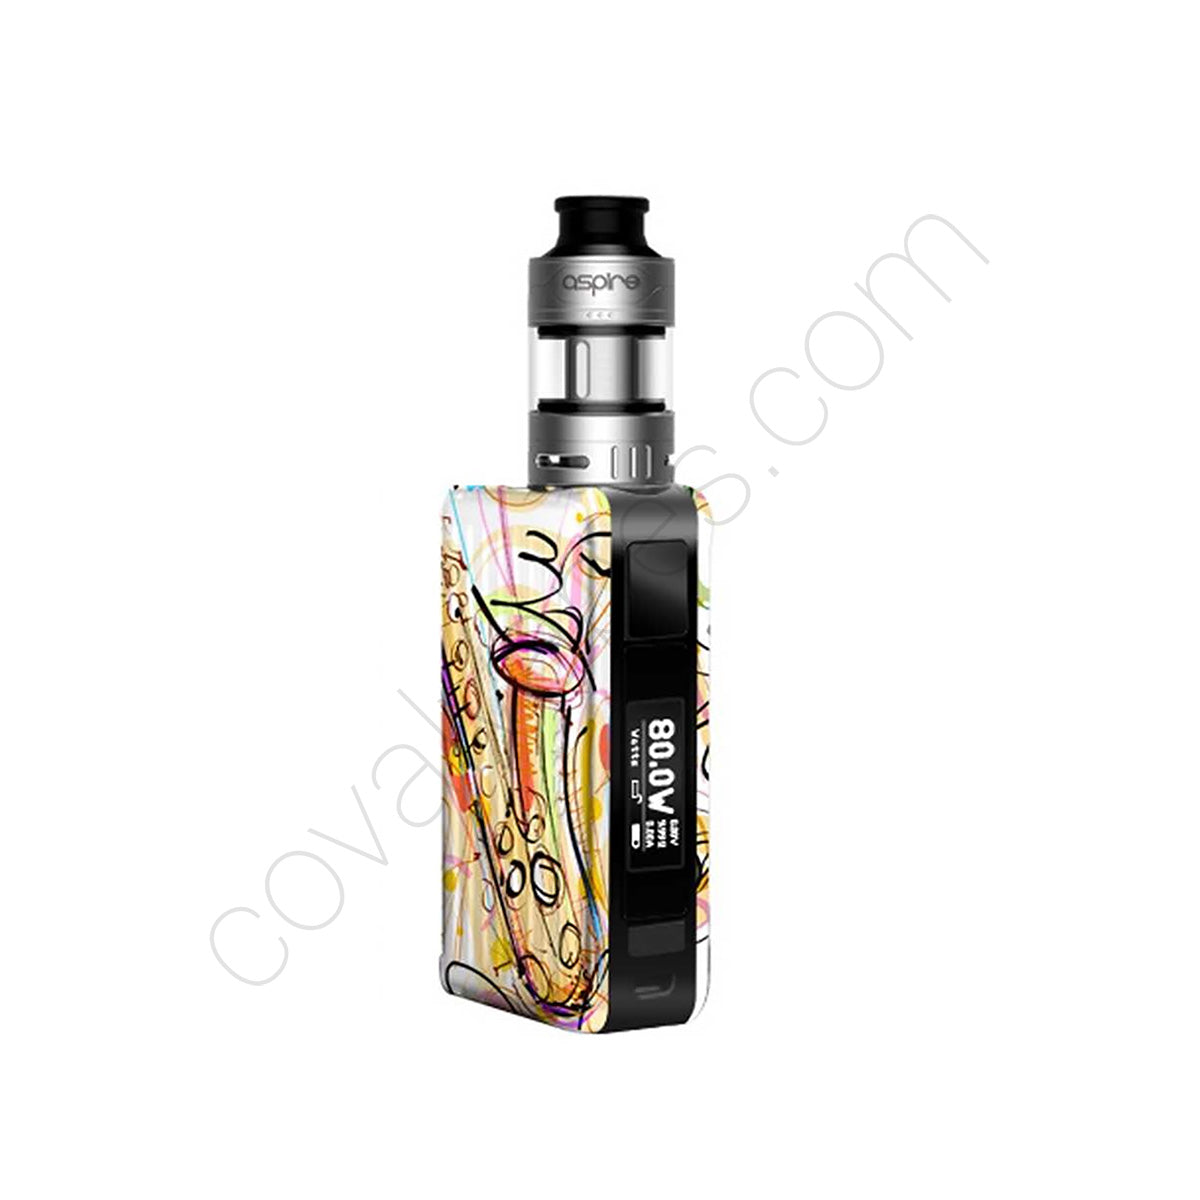 Aspire Puxos Kit with Cleito Pro Tank (Open Box)